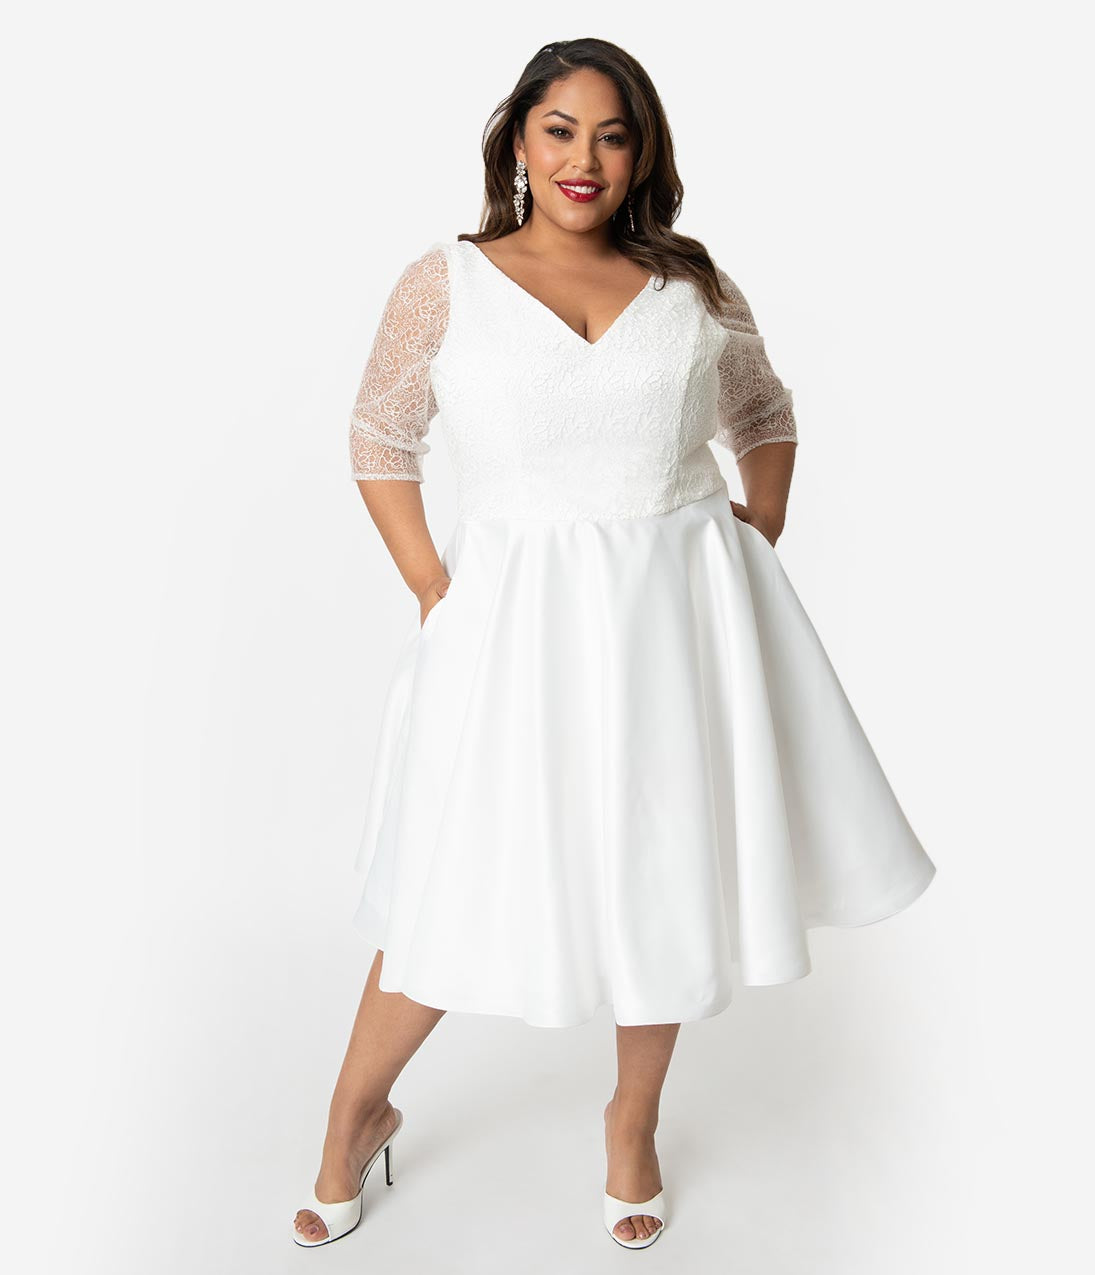 Vintage Inspired Wedding Dress | Vintage Style Wedding Dresses Unique Vintage X Dolly Couture Plus Size White Swirly Lace Juliette Tea Length Bridal Dress $298.00 AT vintagedancer.com